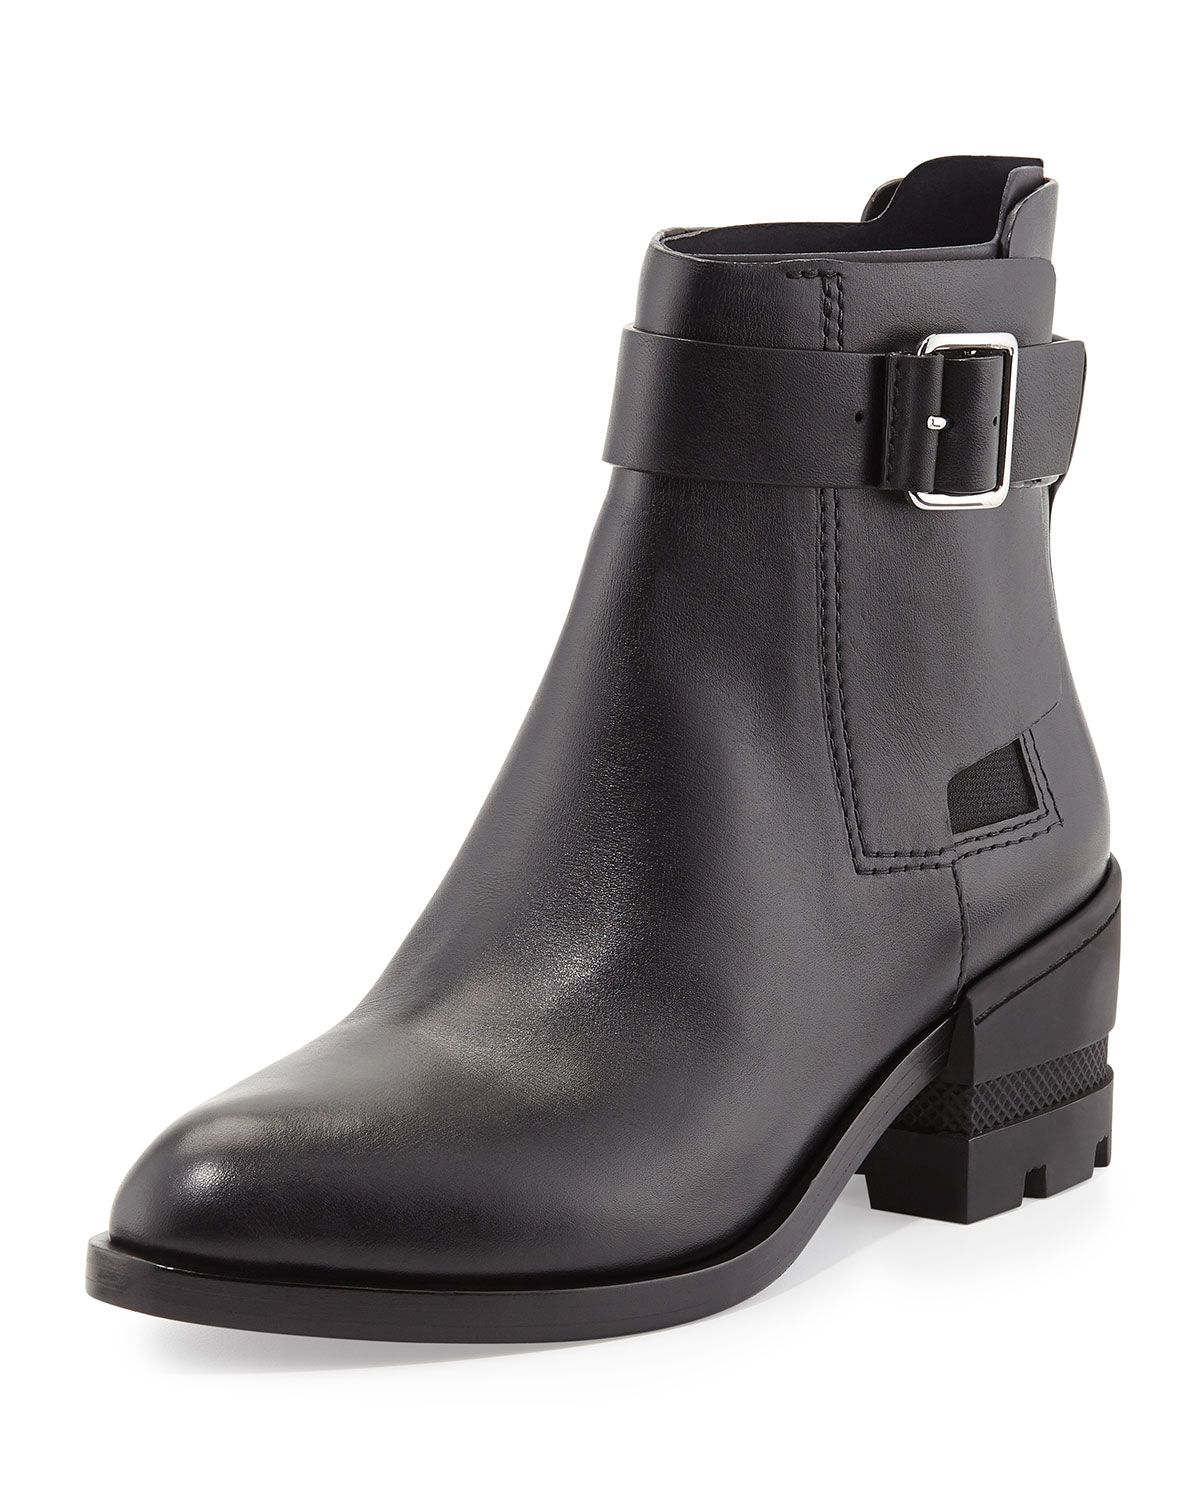 Martine Buckled Ankle Boot, Black - Alexander Wang